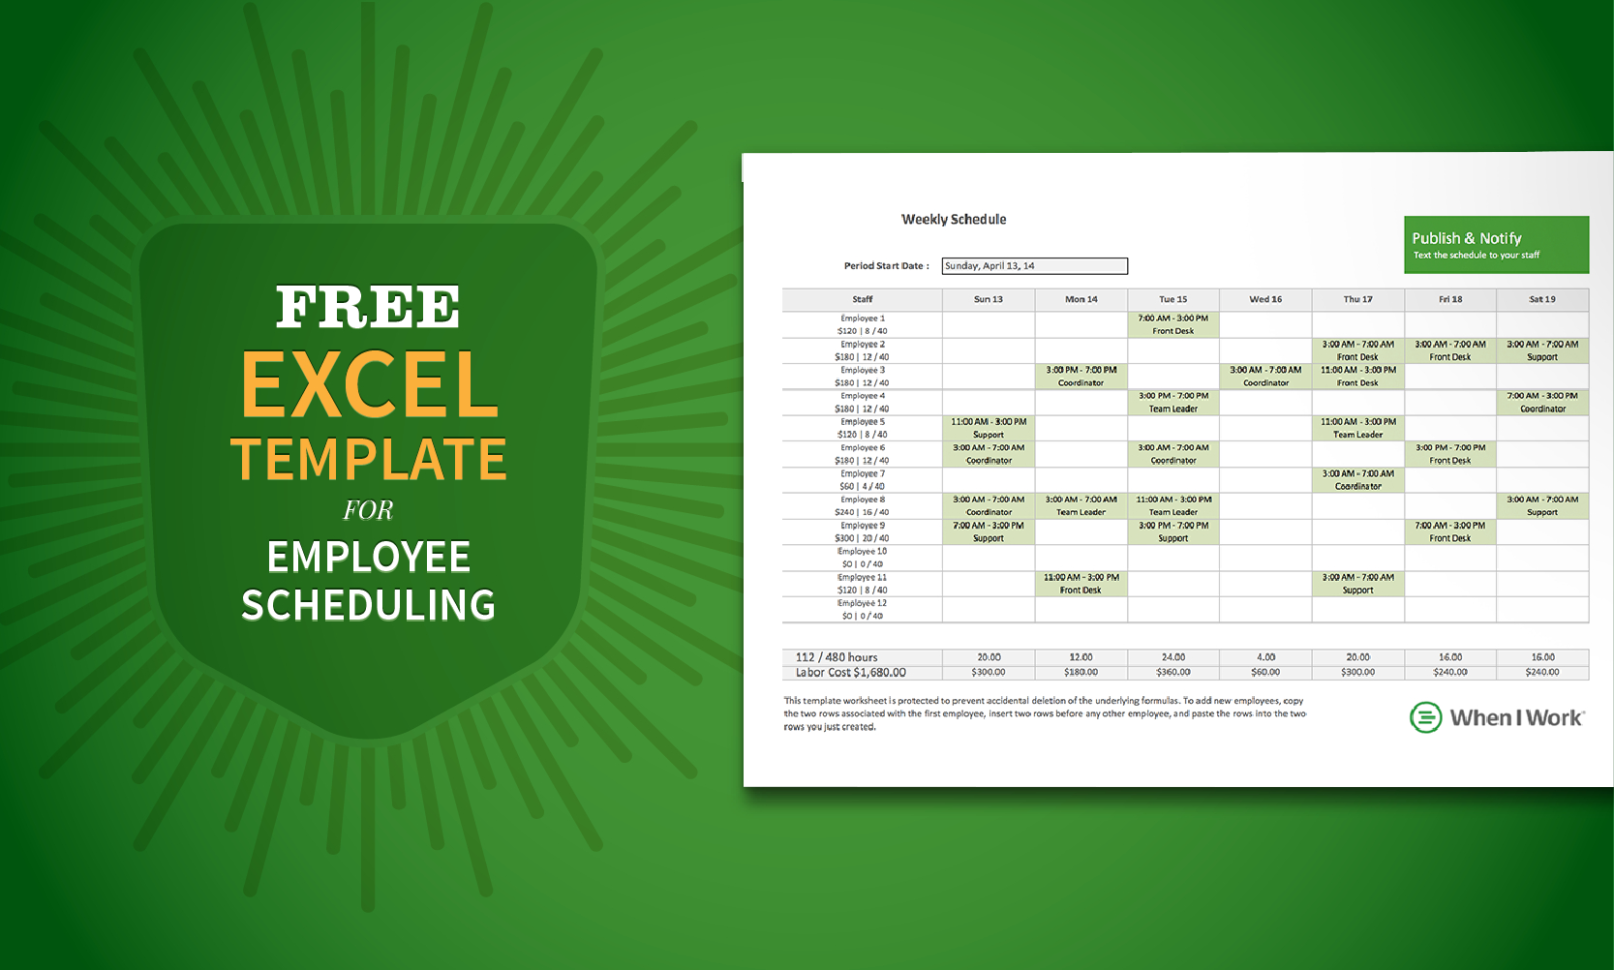 Employee Scheduling Spreadsheet Regarding Free Excel Template For Employee Scheduling  When I Work